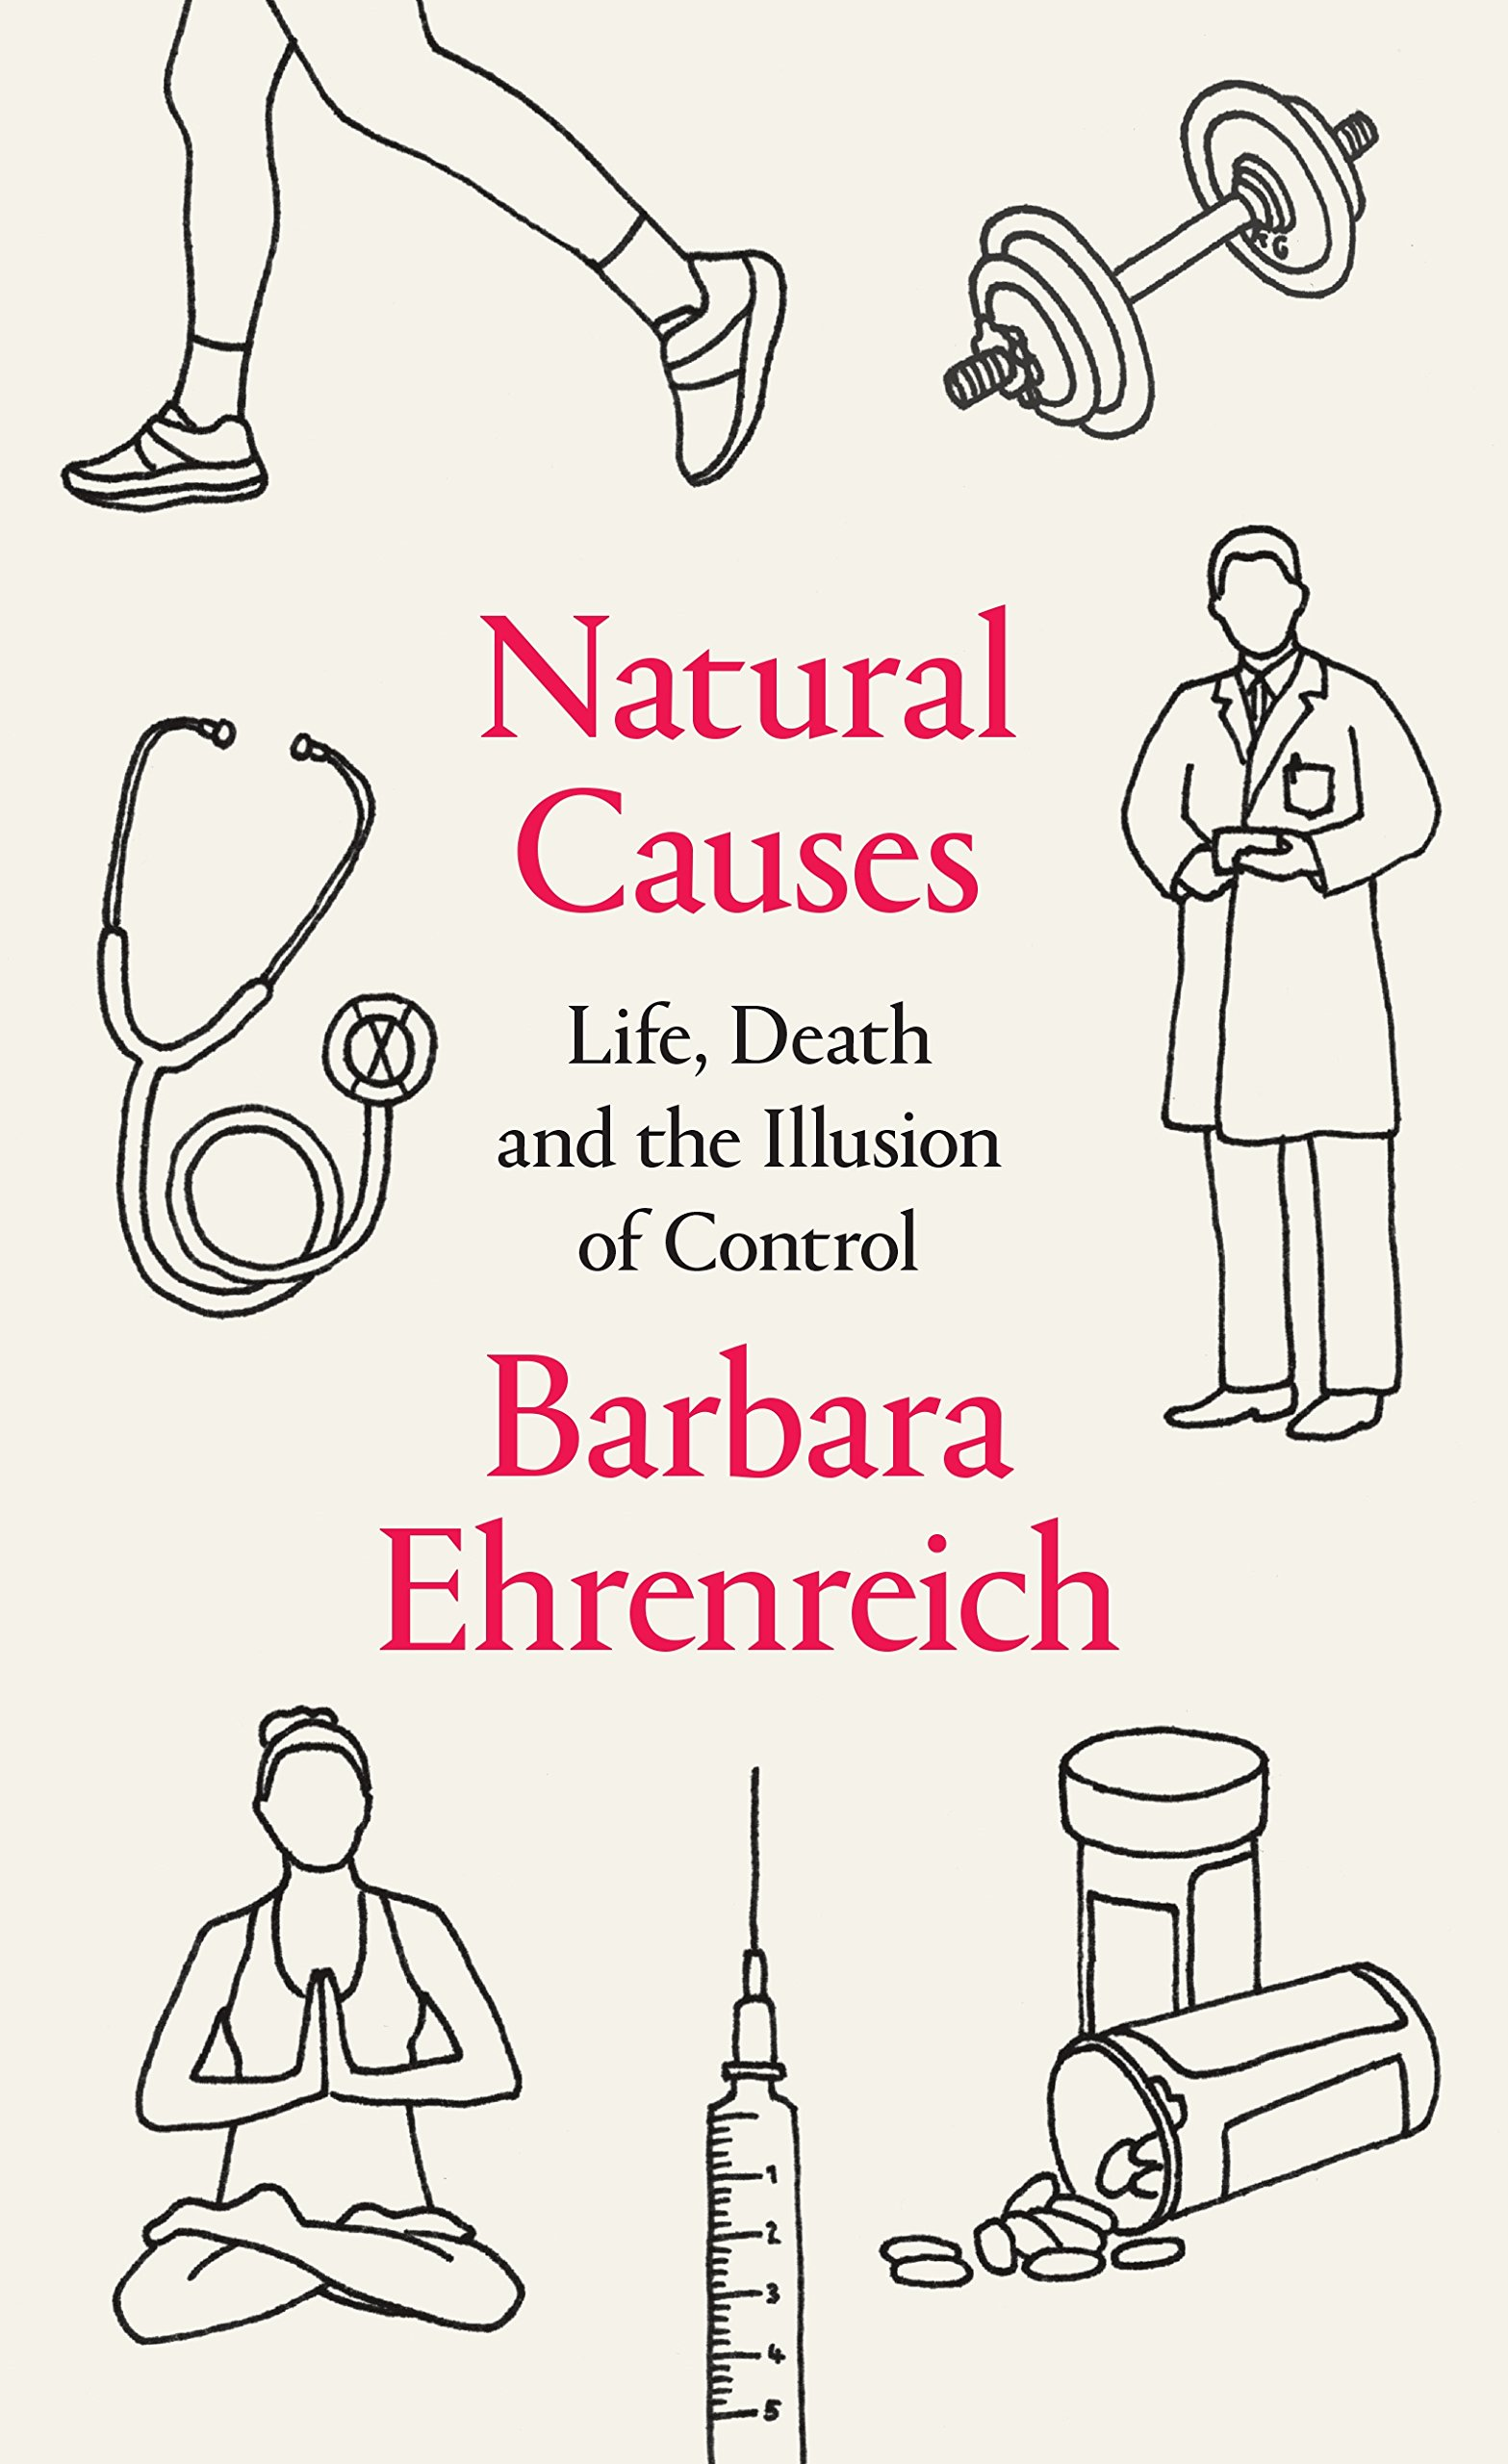 barbara ehrenreich the worst years of our lives The worst years of our lives: irreverent notes from a decade of greed by ehrenreich, barbara and a great selection of similar used, new and collectible books available now at abebookscom.